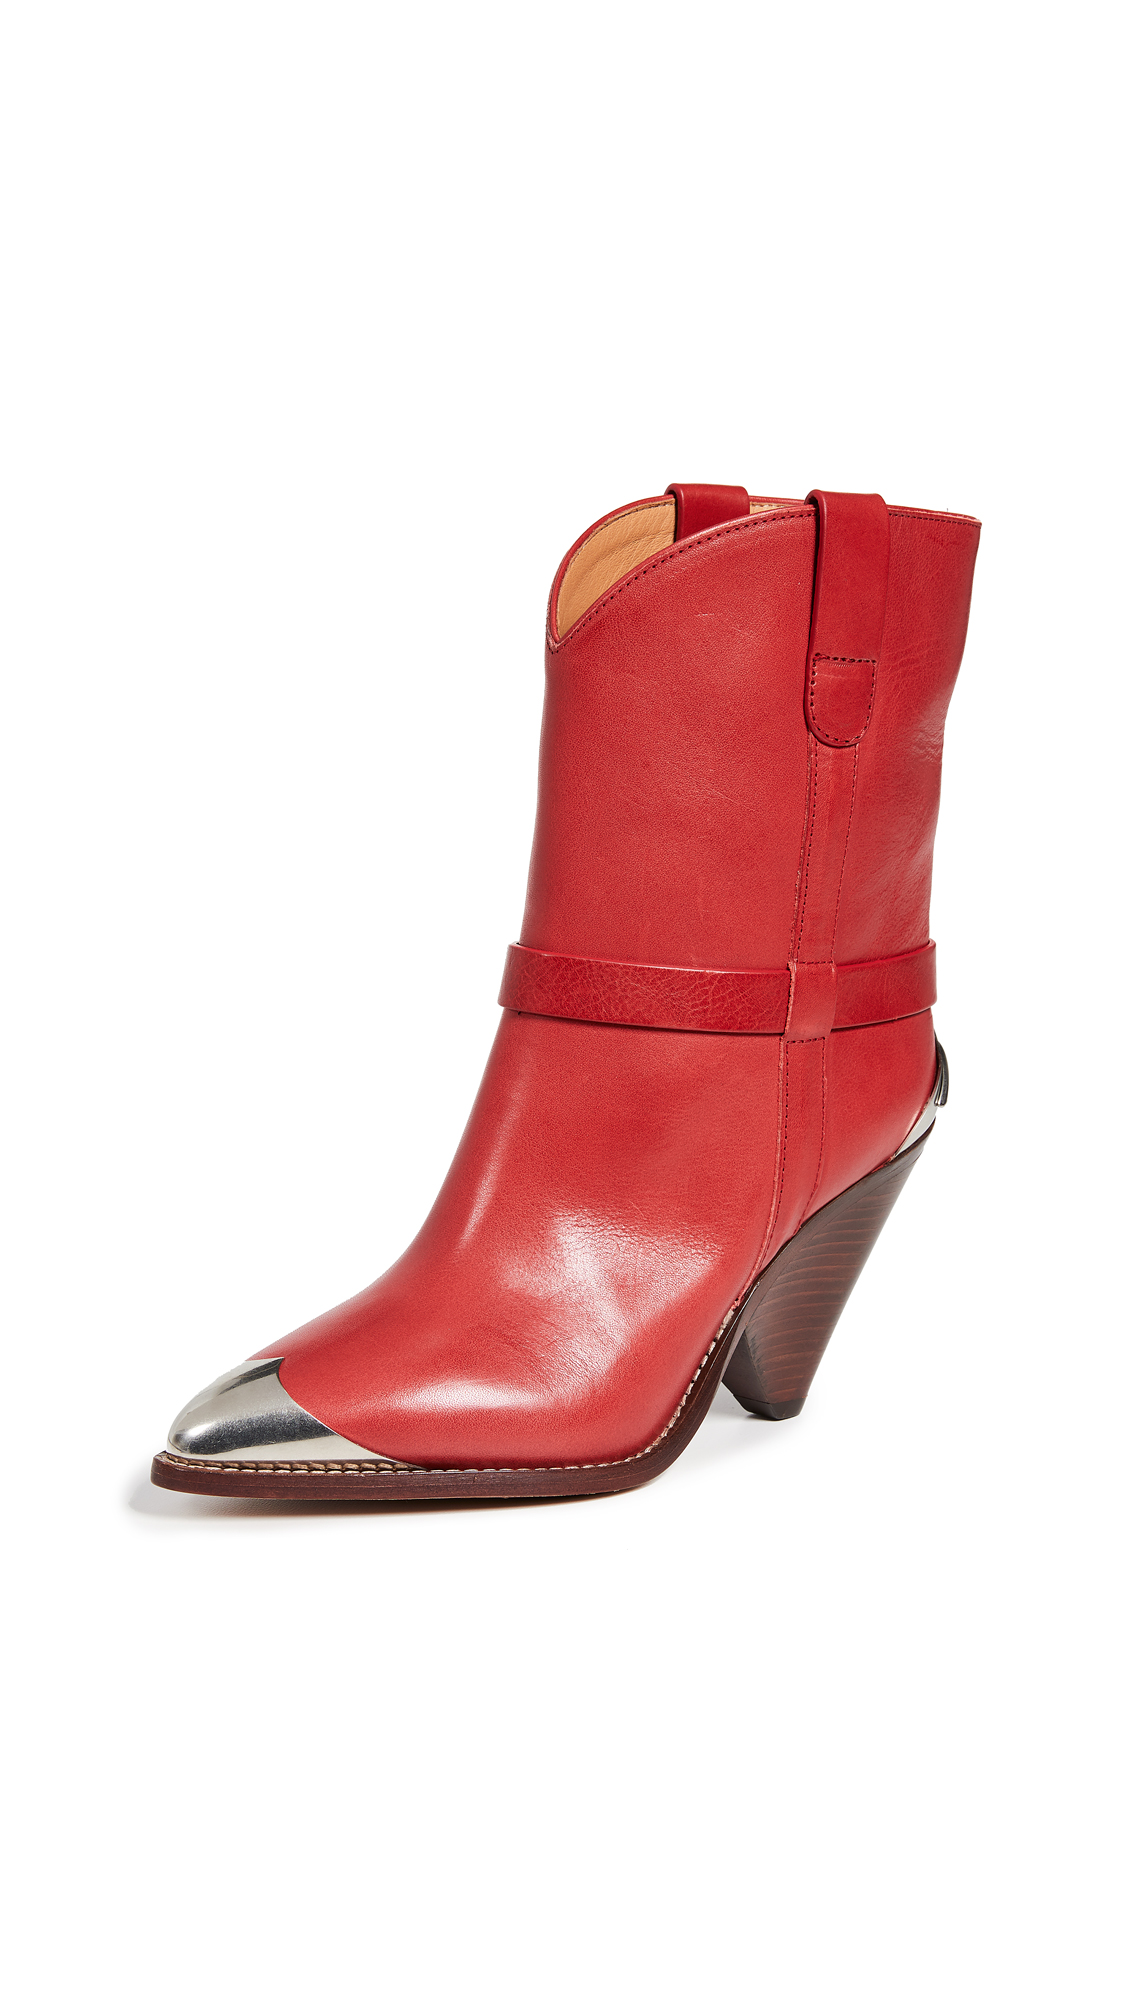 Isabel Marant Lamsy Boots - Red